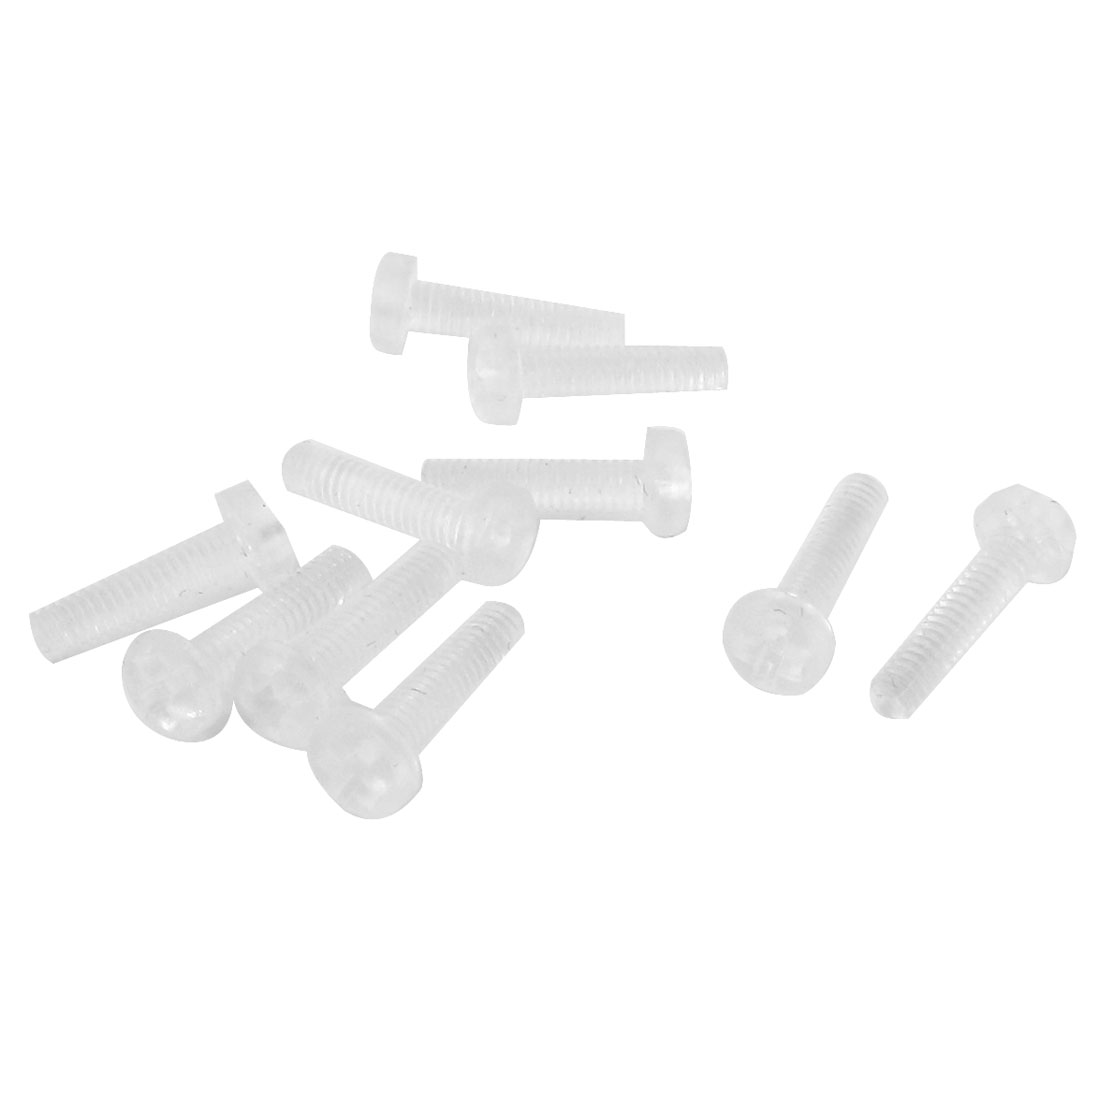 M2.5 x 10mm Plastic Fillister Head Phillips Drive Machine Screw 10pcs